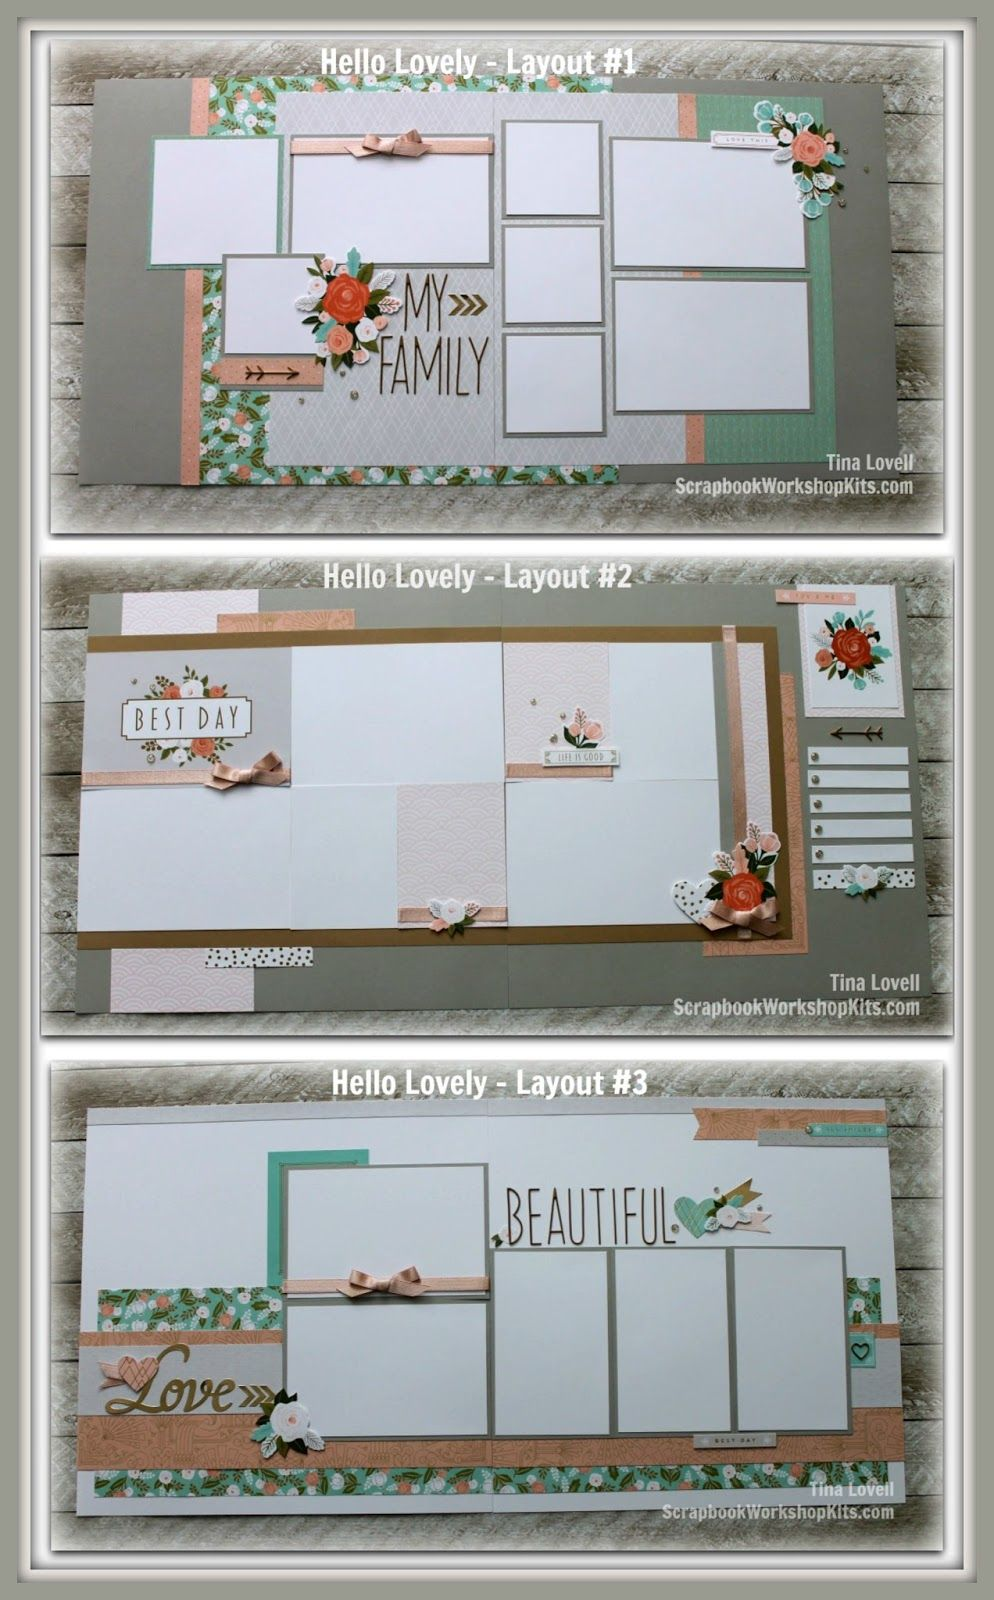 How to scrapbook faster - Scrapbook Kit Cutting Guides Click On Tab At Top To See Card Cutting Guides